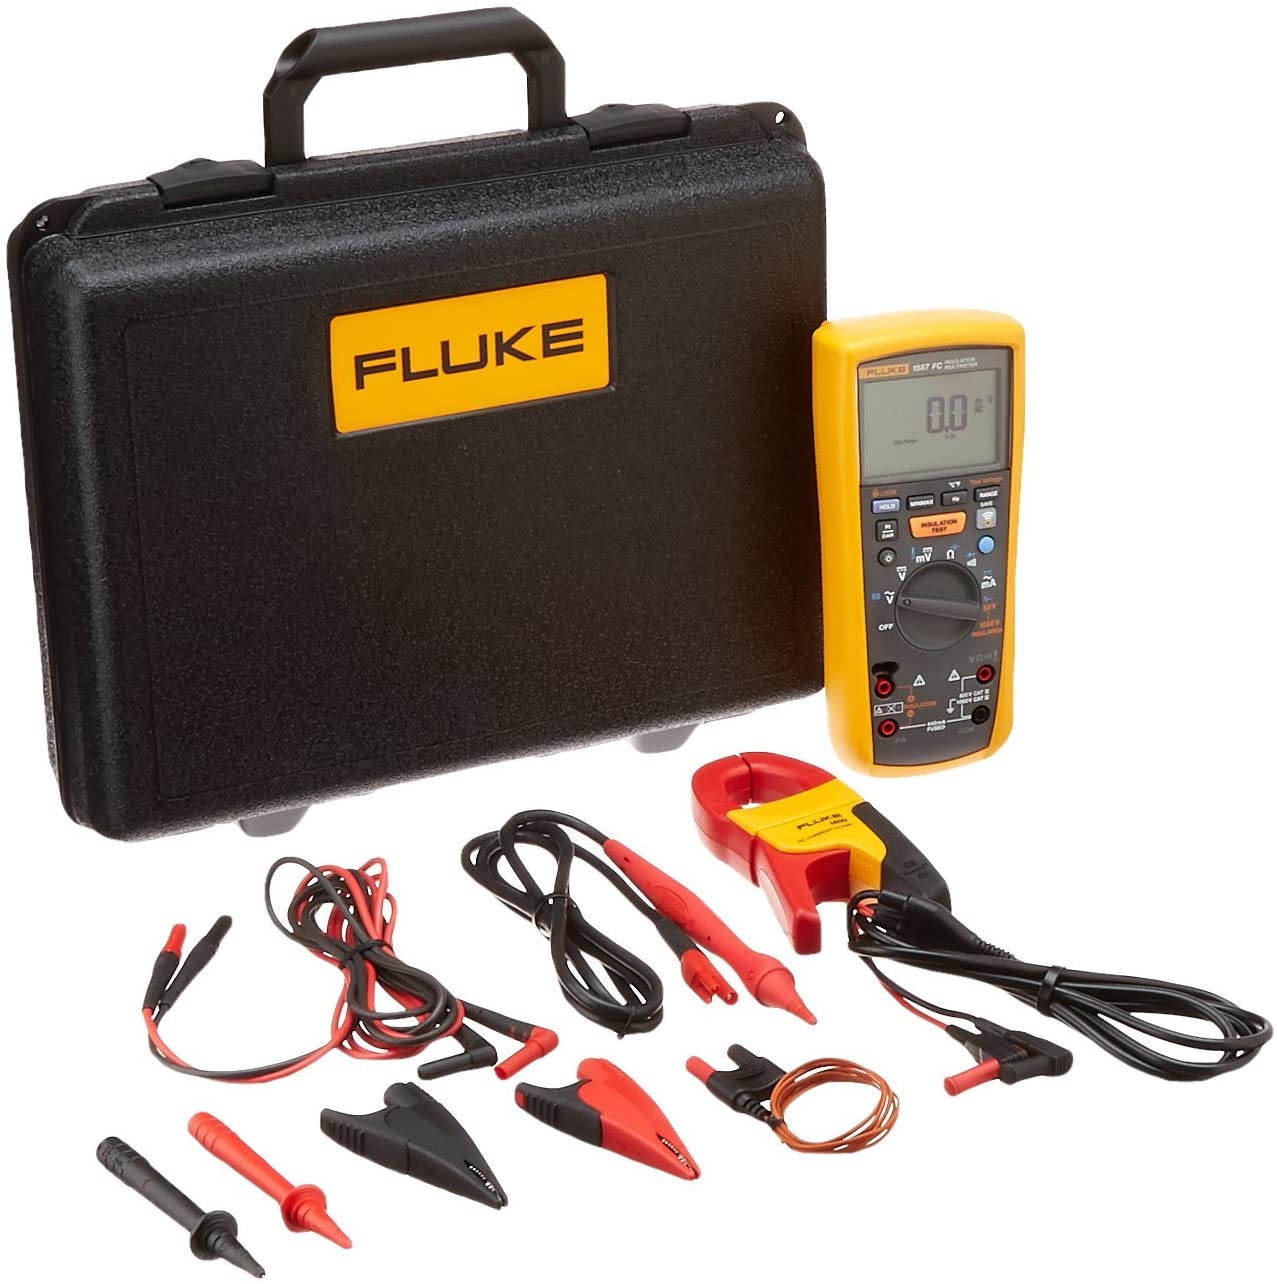 FLUKE-1587 I400 FC 2-in-1 Insulation Multimeter W Clamp